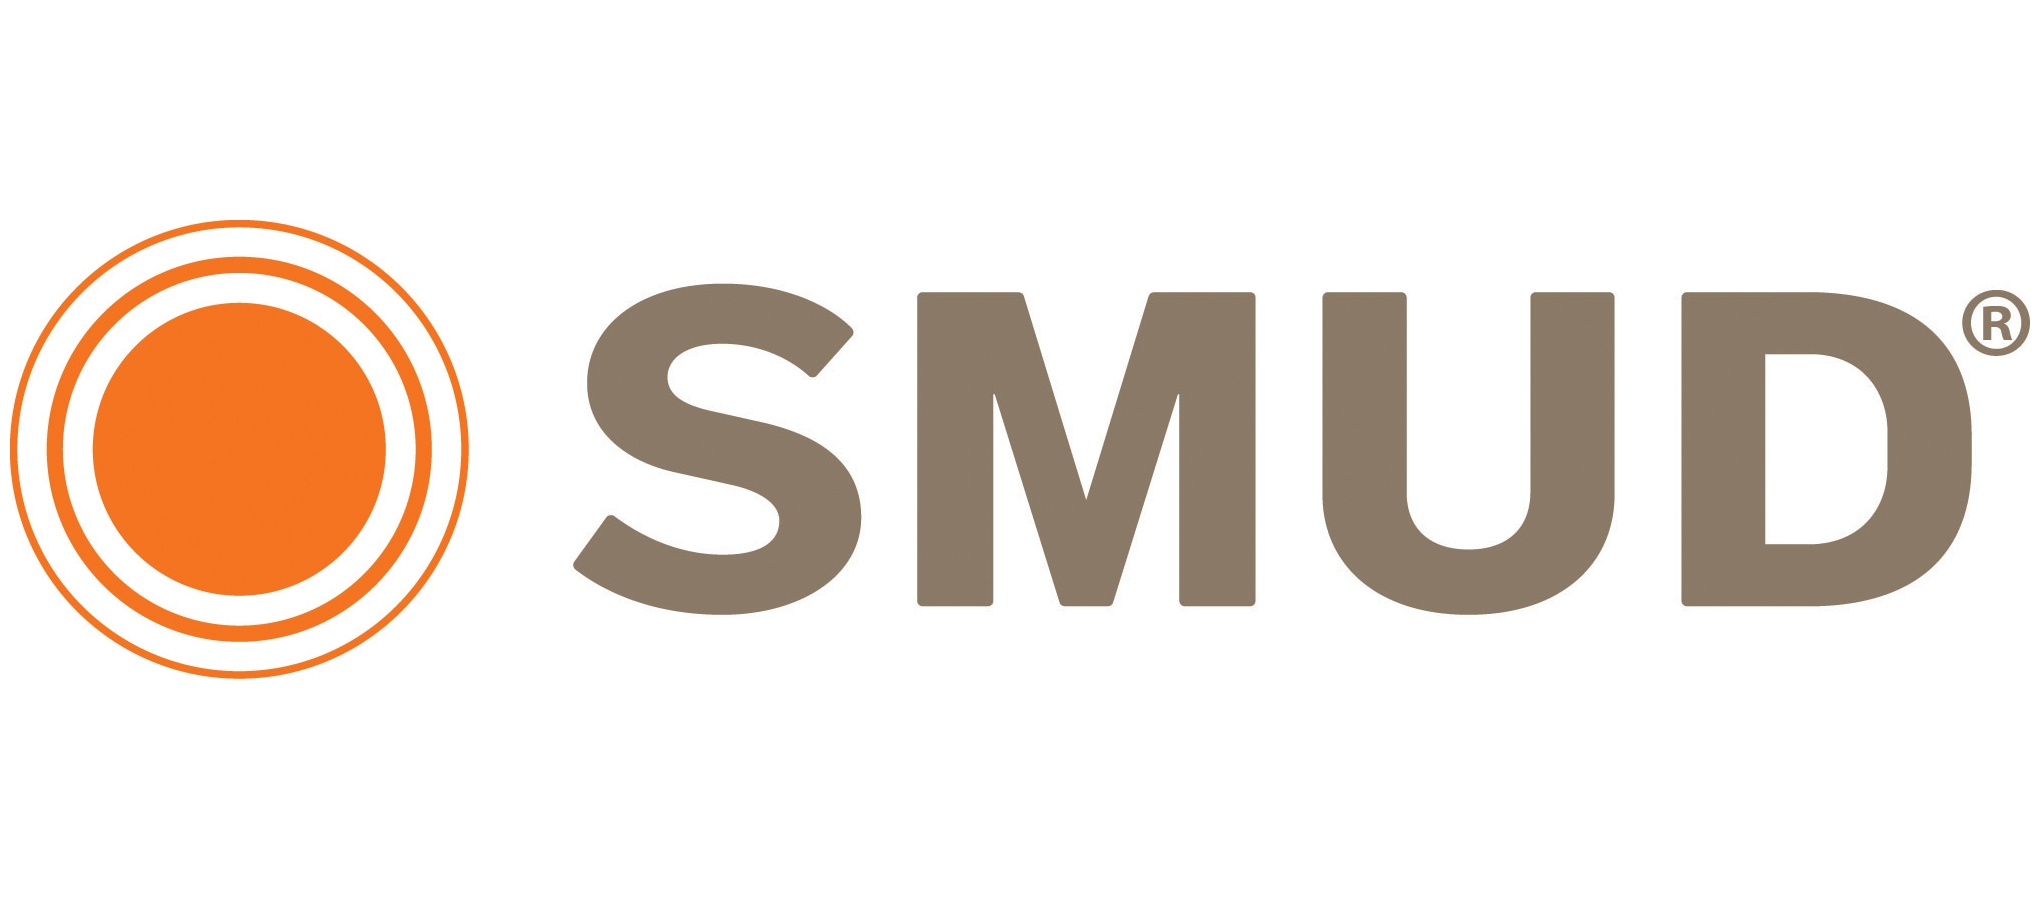 Sacramento Municipal Utility District (SMUD) is the sponsor of the Caring for Our Watershed finals